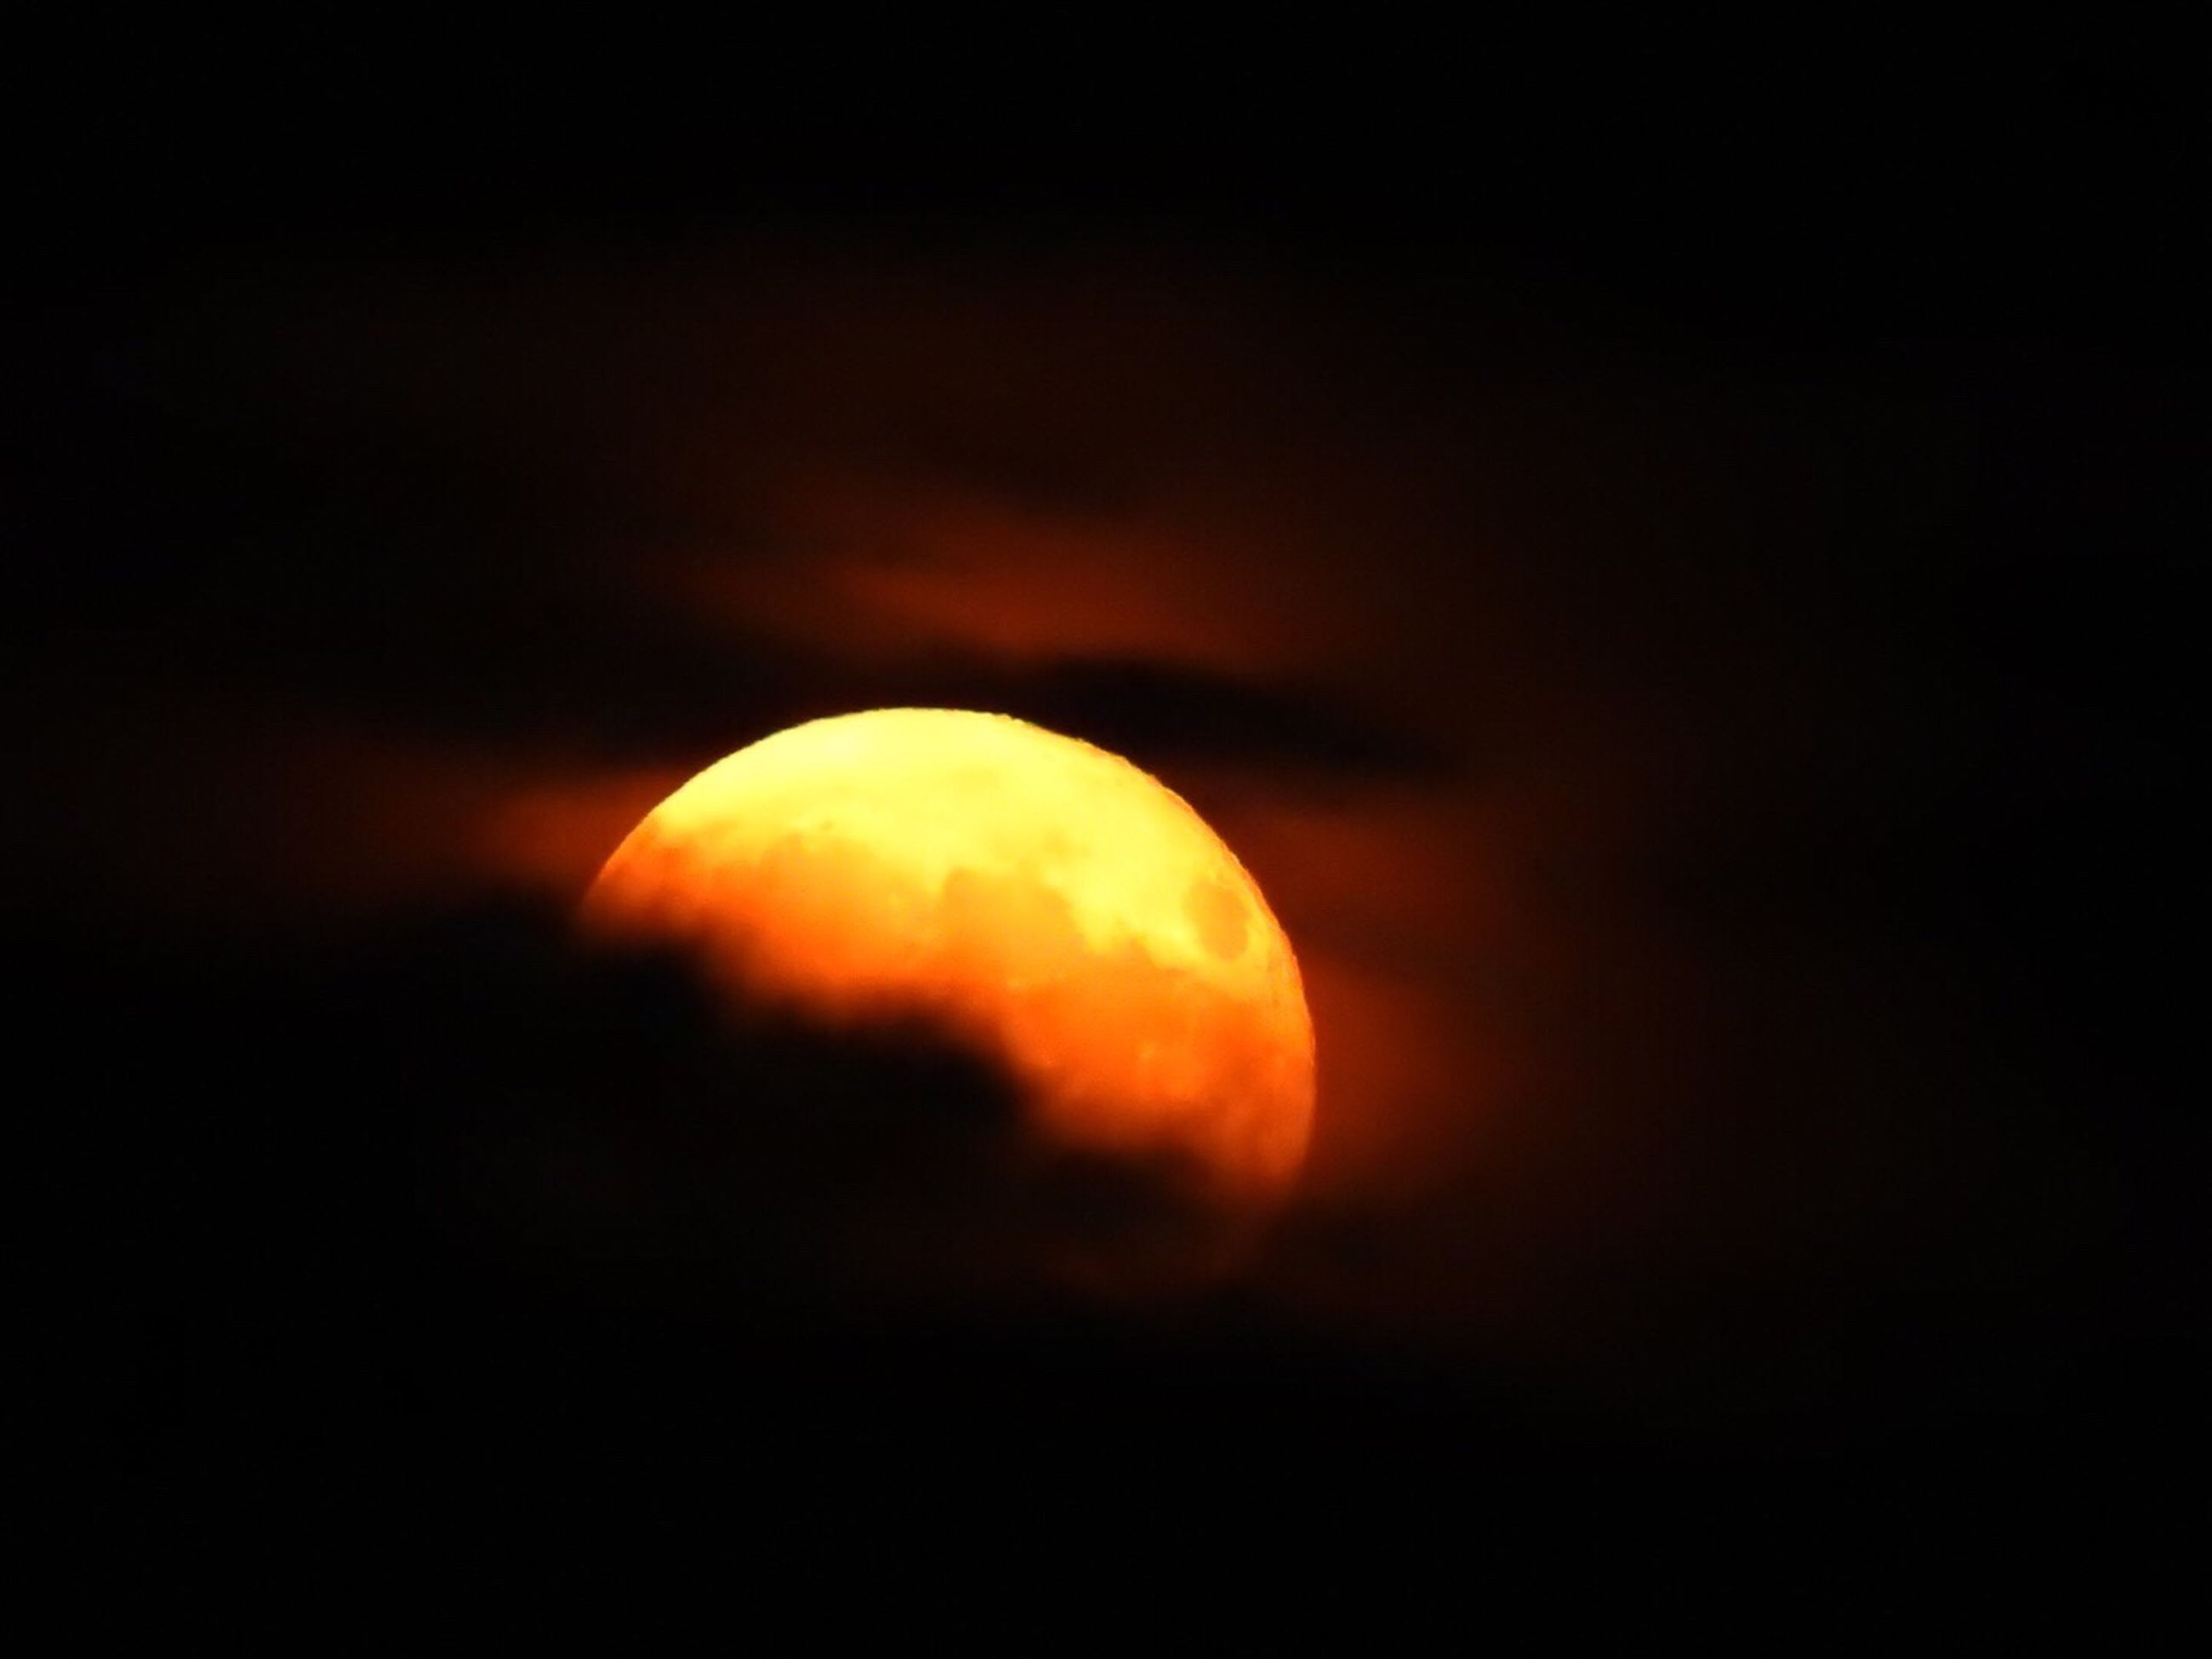 orange color, yellow, close-up, no people, sky, nature, outdoors, beauty in nature, night, astronomy